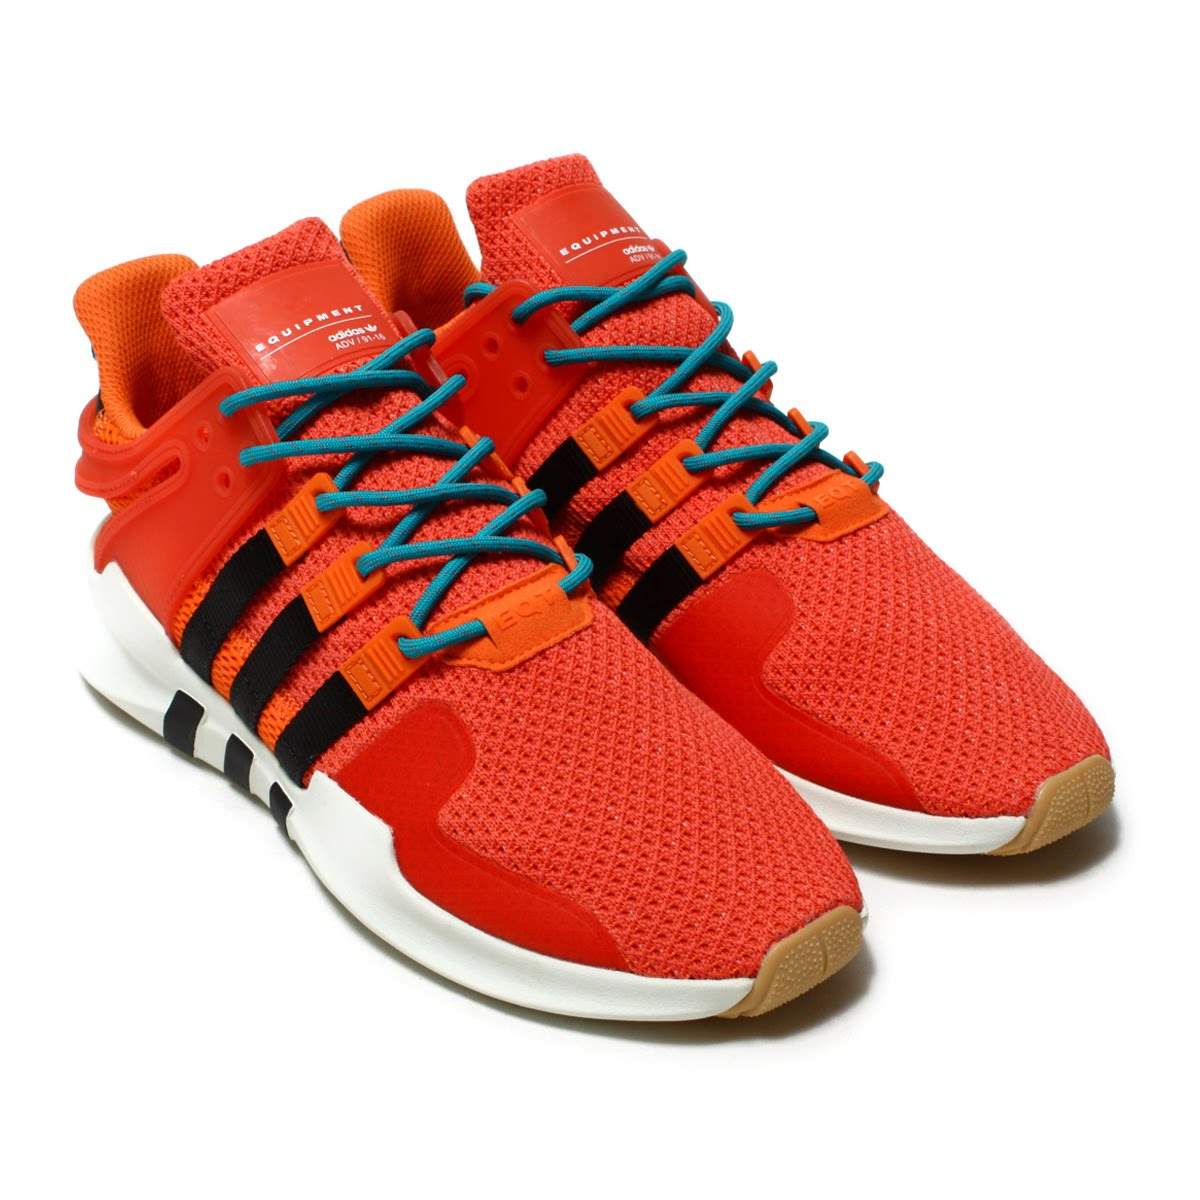 promo code 4dbe6 ebda0 adidas Originals EQT SUPPORT ADV SUMMER (Adidas originals E cue tea support  ADV summer) Trase Orange/White Tint/Gum 18SS-I